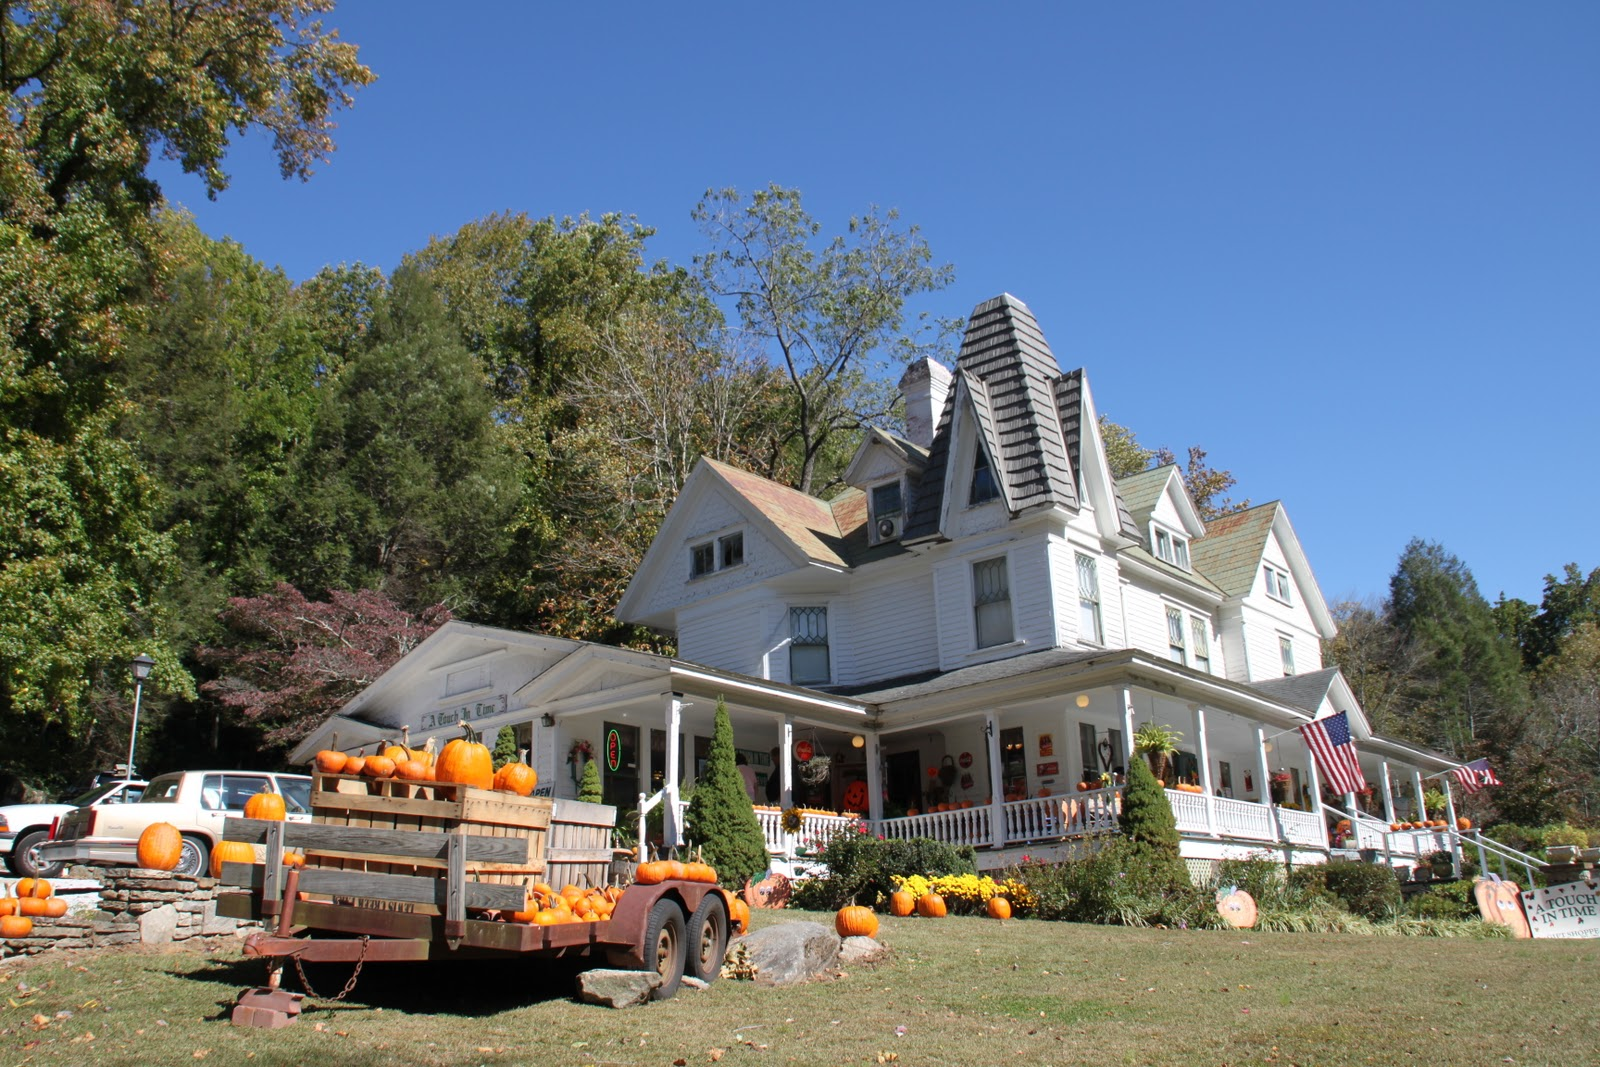 One of my favorite places is this wonderful old building housing the gift shop a touch in time the front porch beckons with a line of pumpkins on the